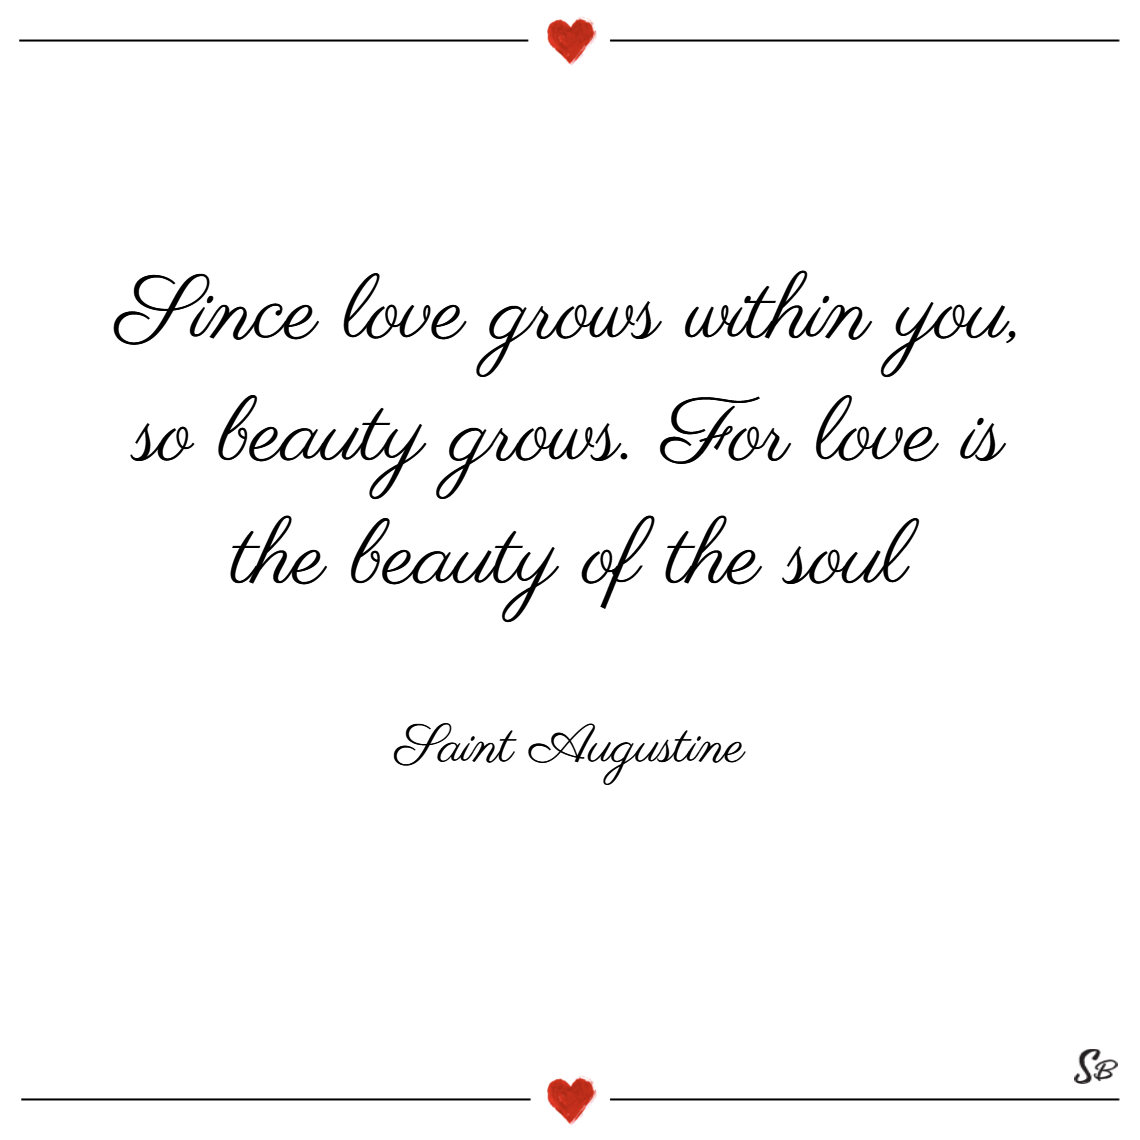 Since love grows within you, so beauty grows. for love is the beauty of the soul. – saint augustine